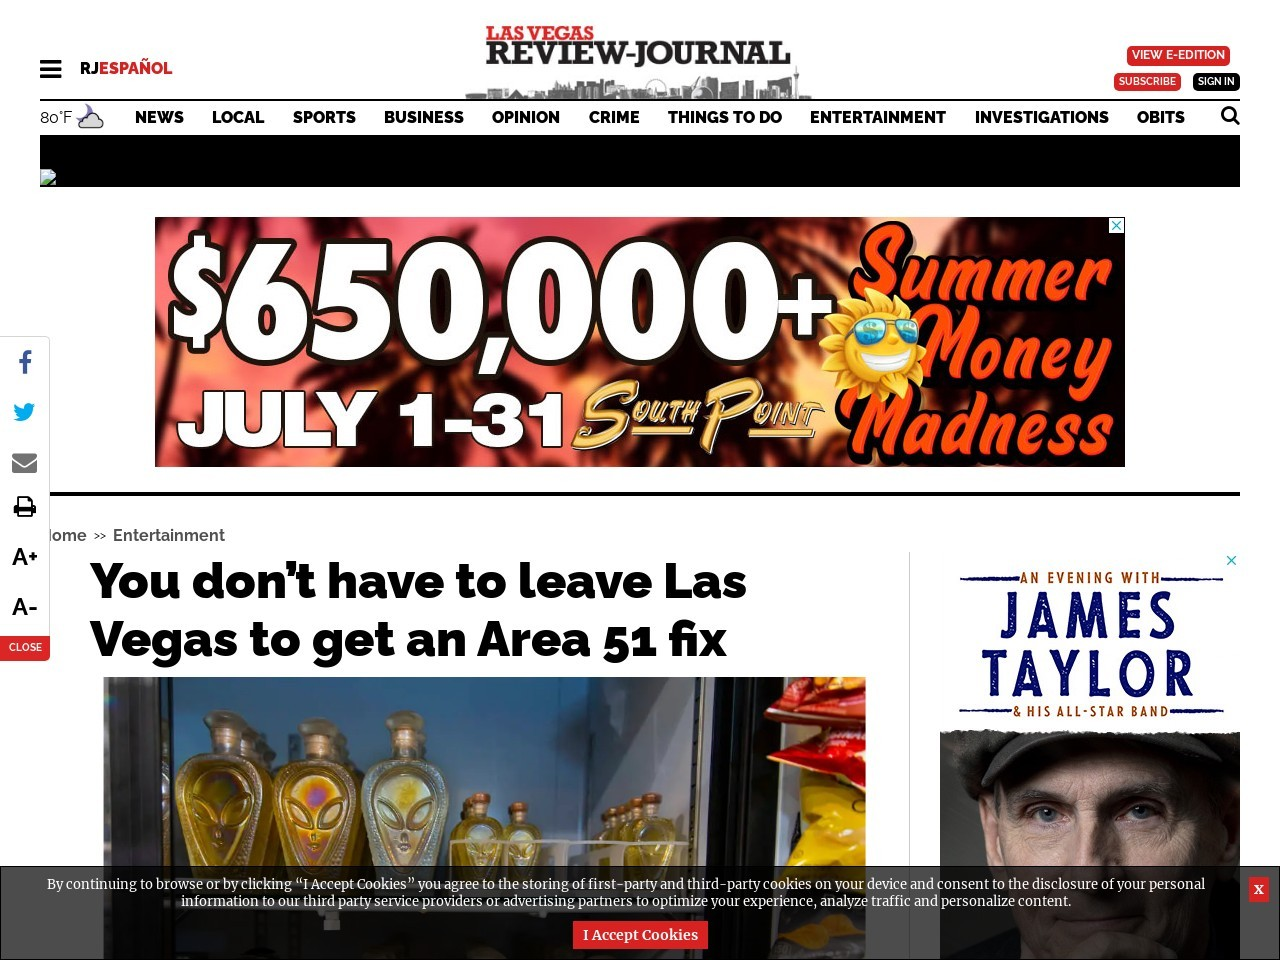 You don't have to leave Las Vegas to get an Area 51 fix